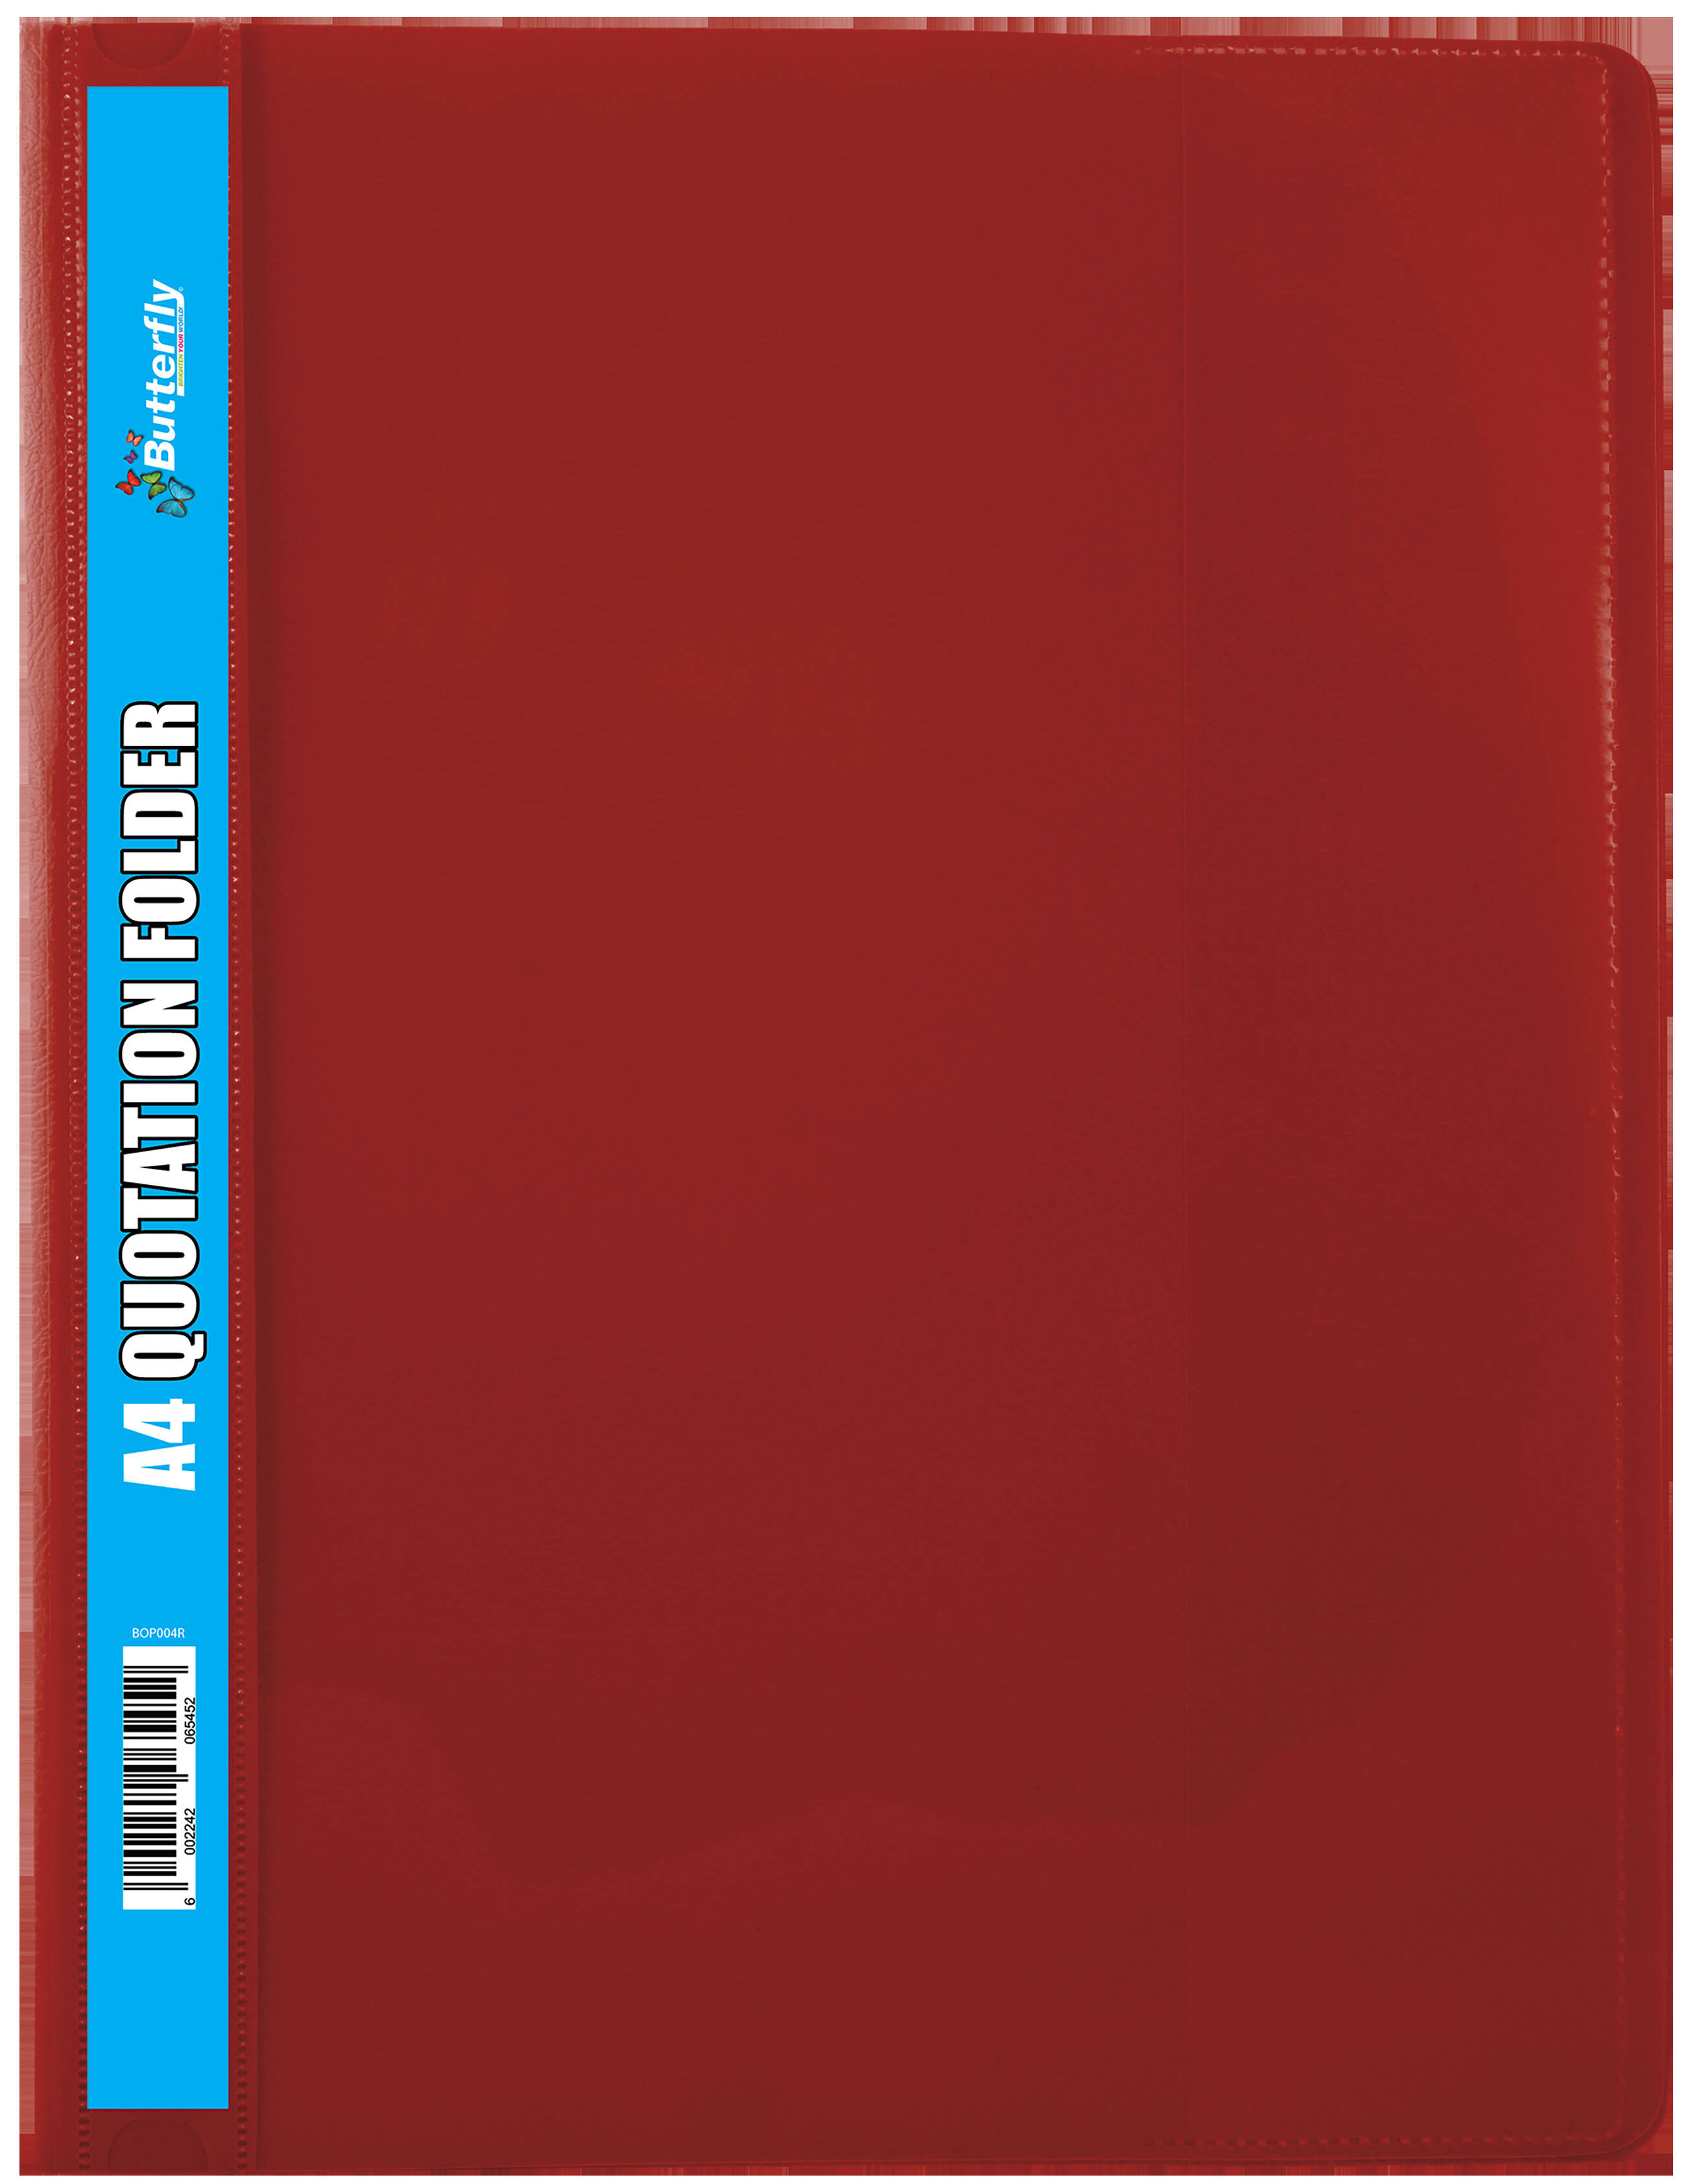 A4 Quotation Folders - 180 Micron - Red